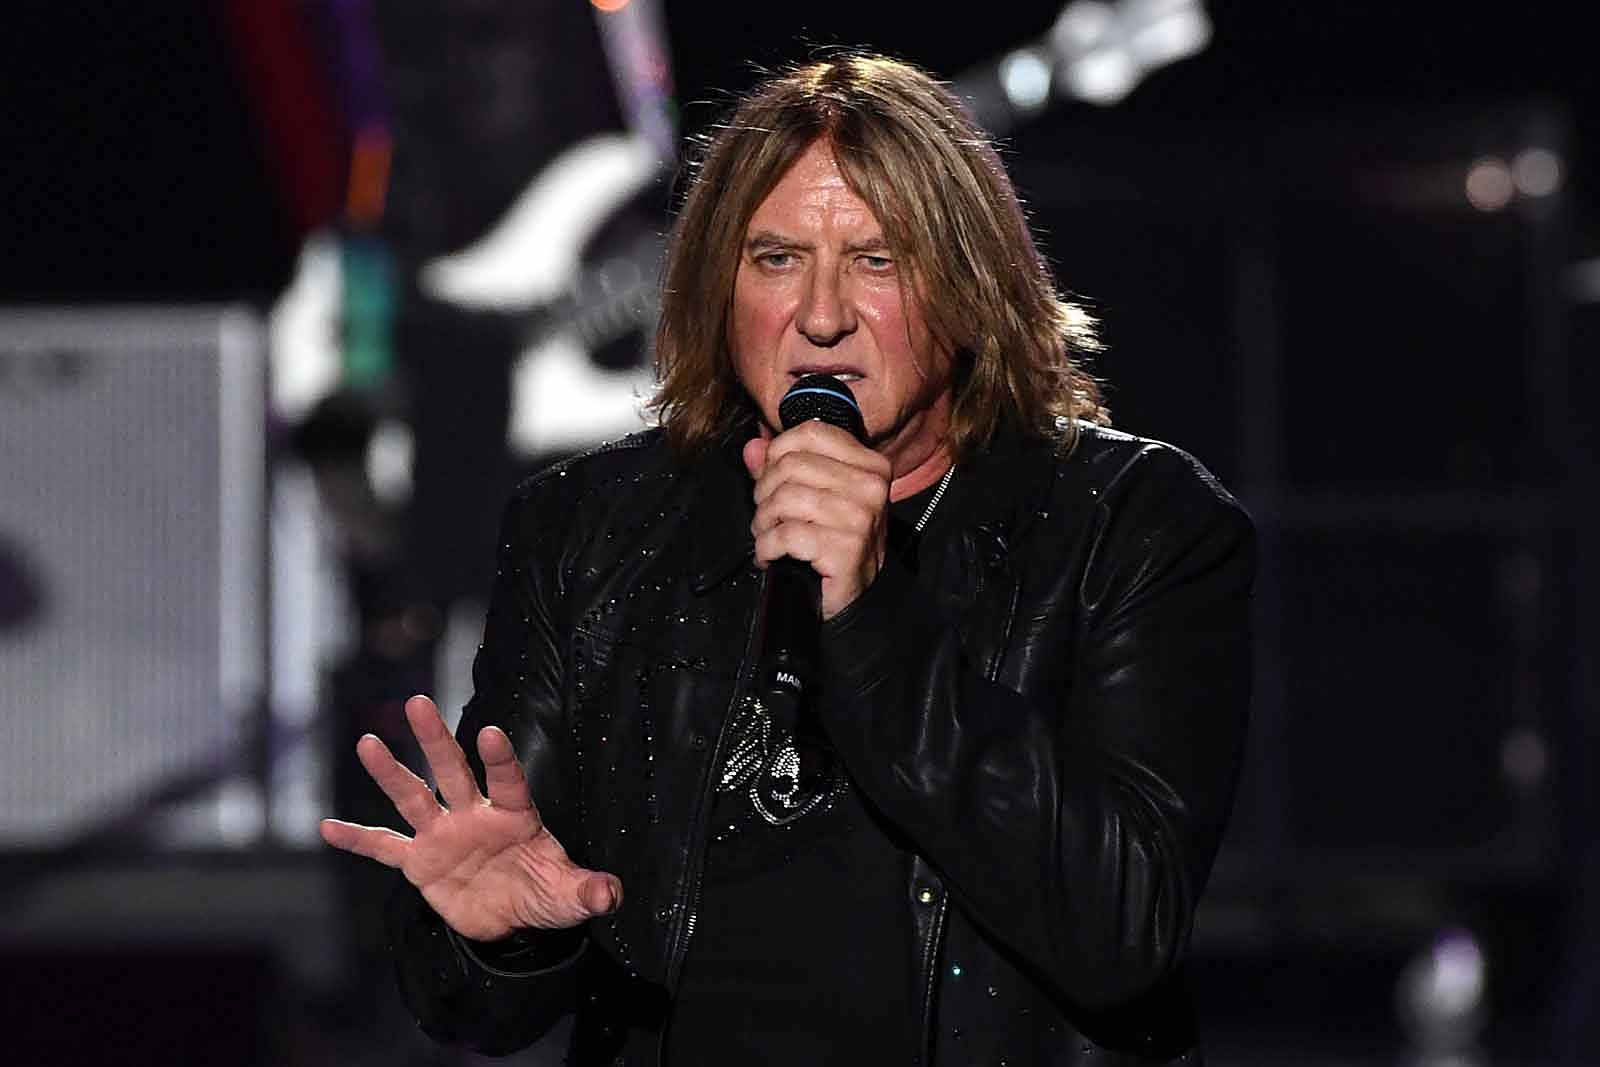 Def Leppard's 'Pour Some Sugar on Me' Began With Random Noises